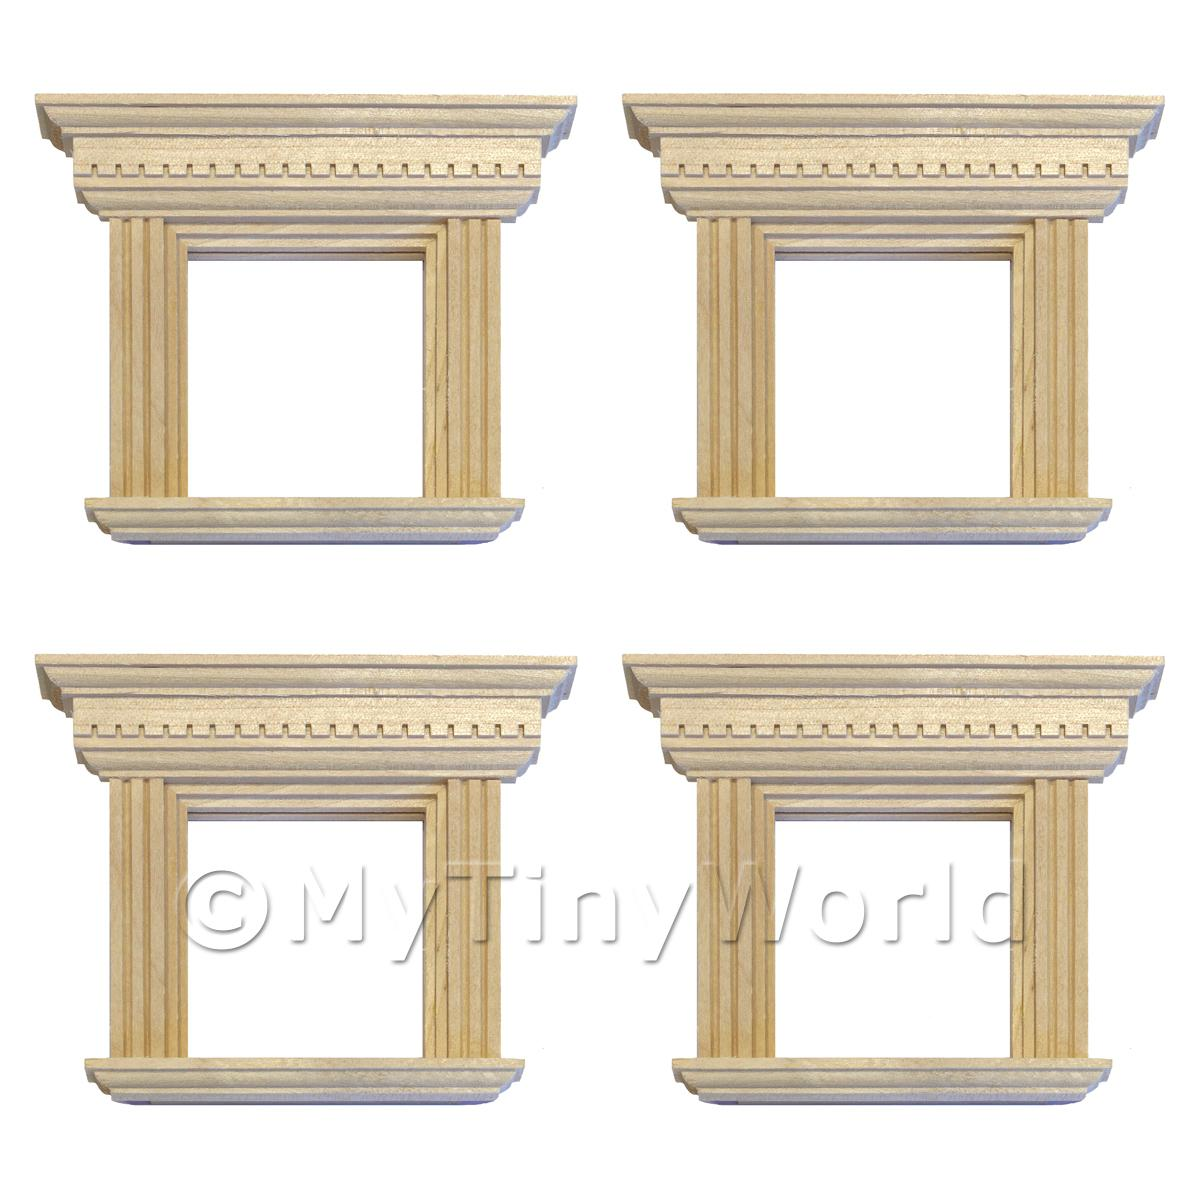 4 x Dolls House Square Wood Window With Decorative Frame